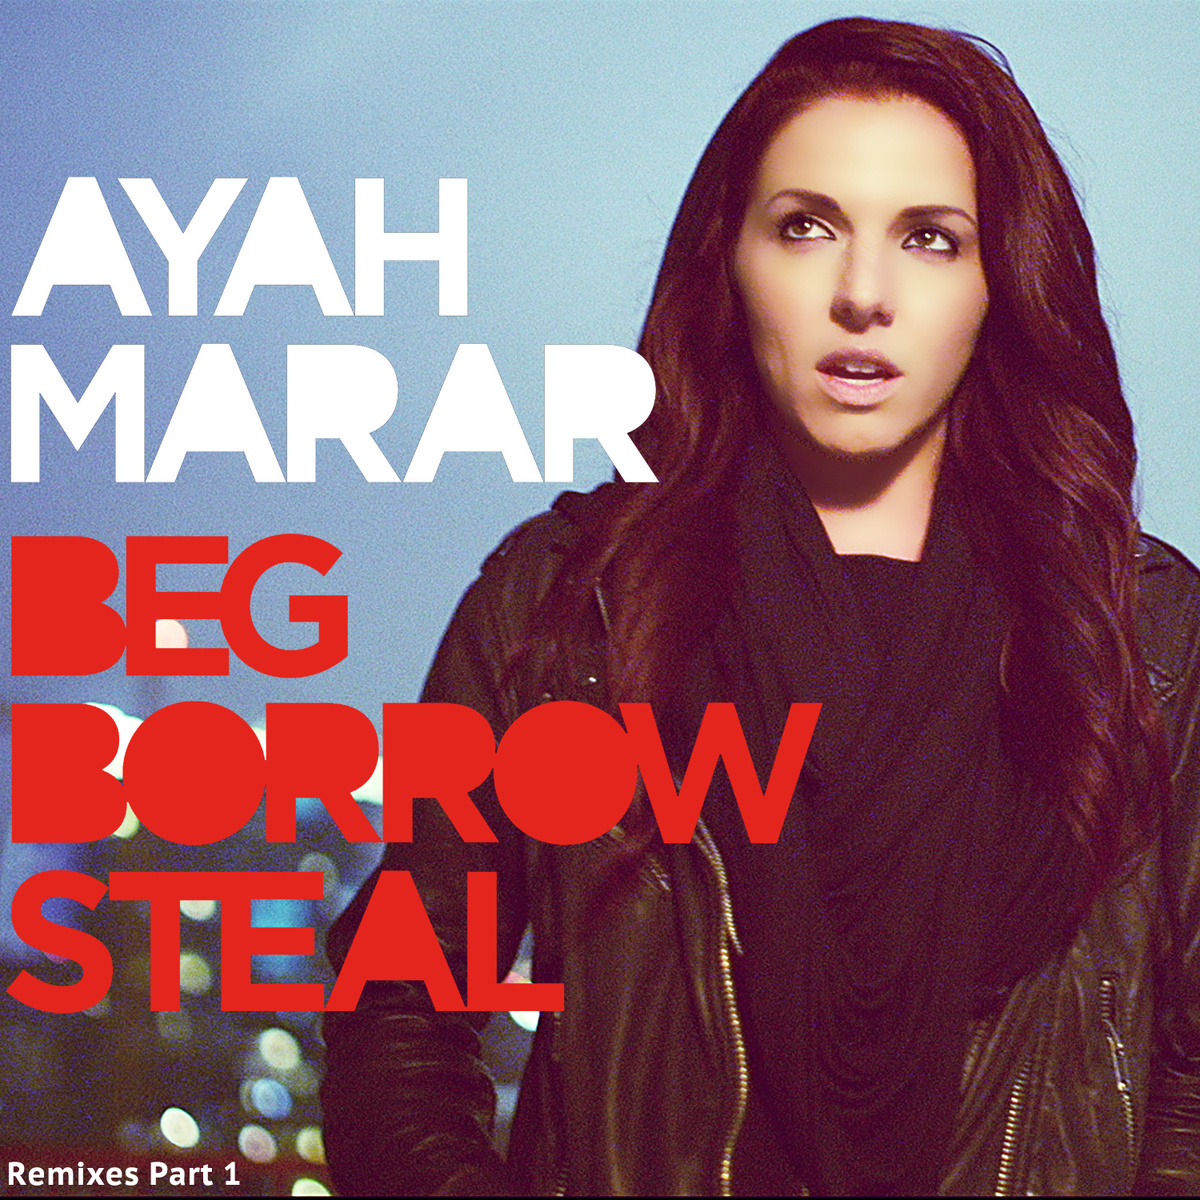 Ayah Marar – Beg Borrow Steal (Radio Edit)